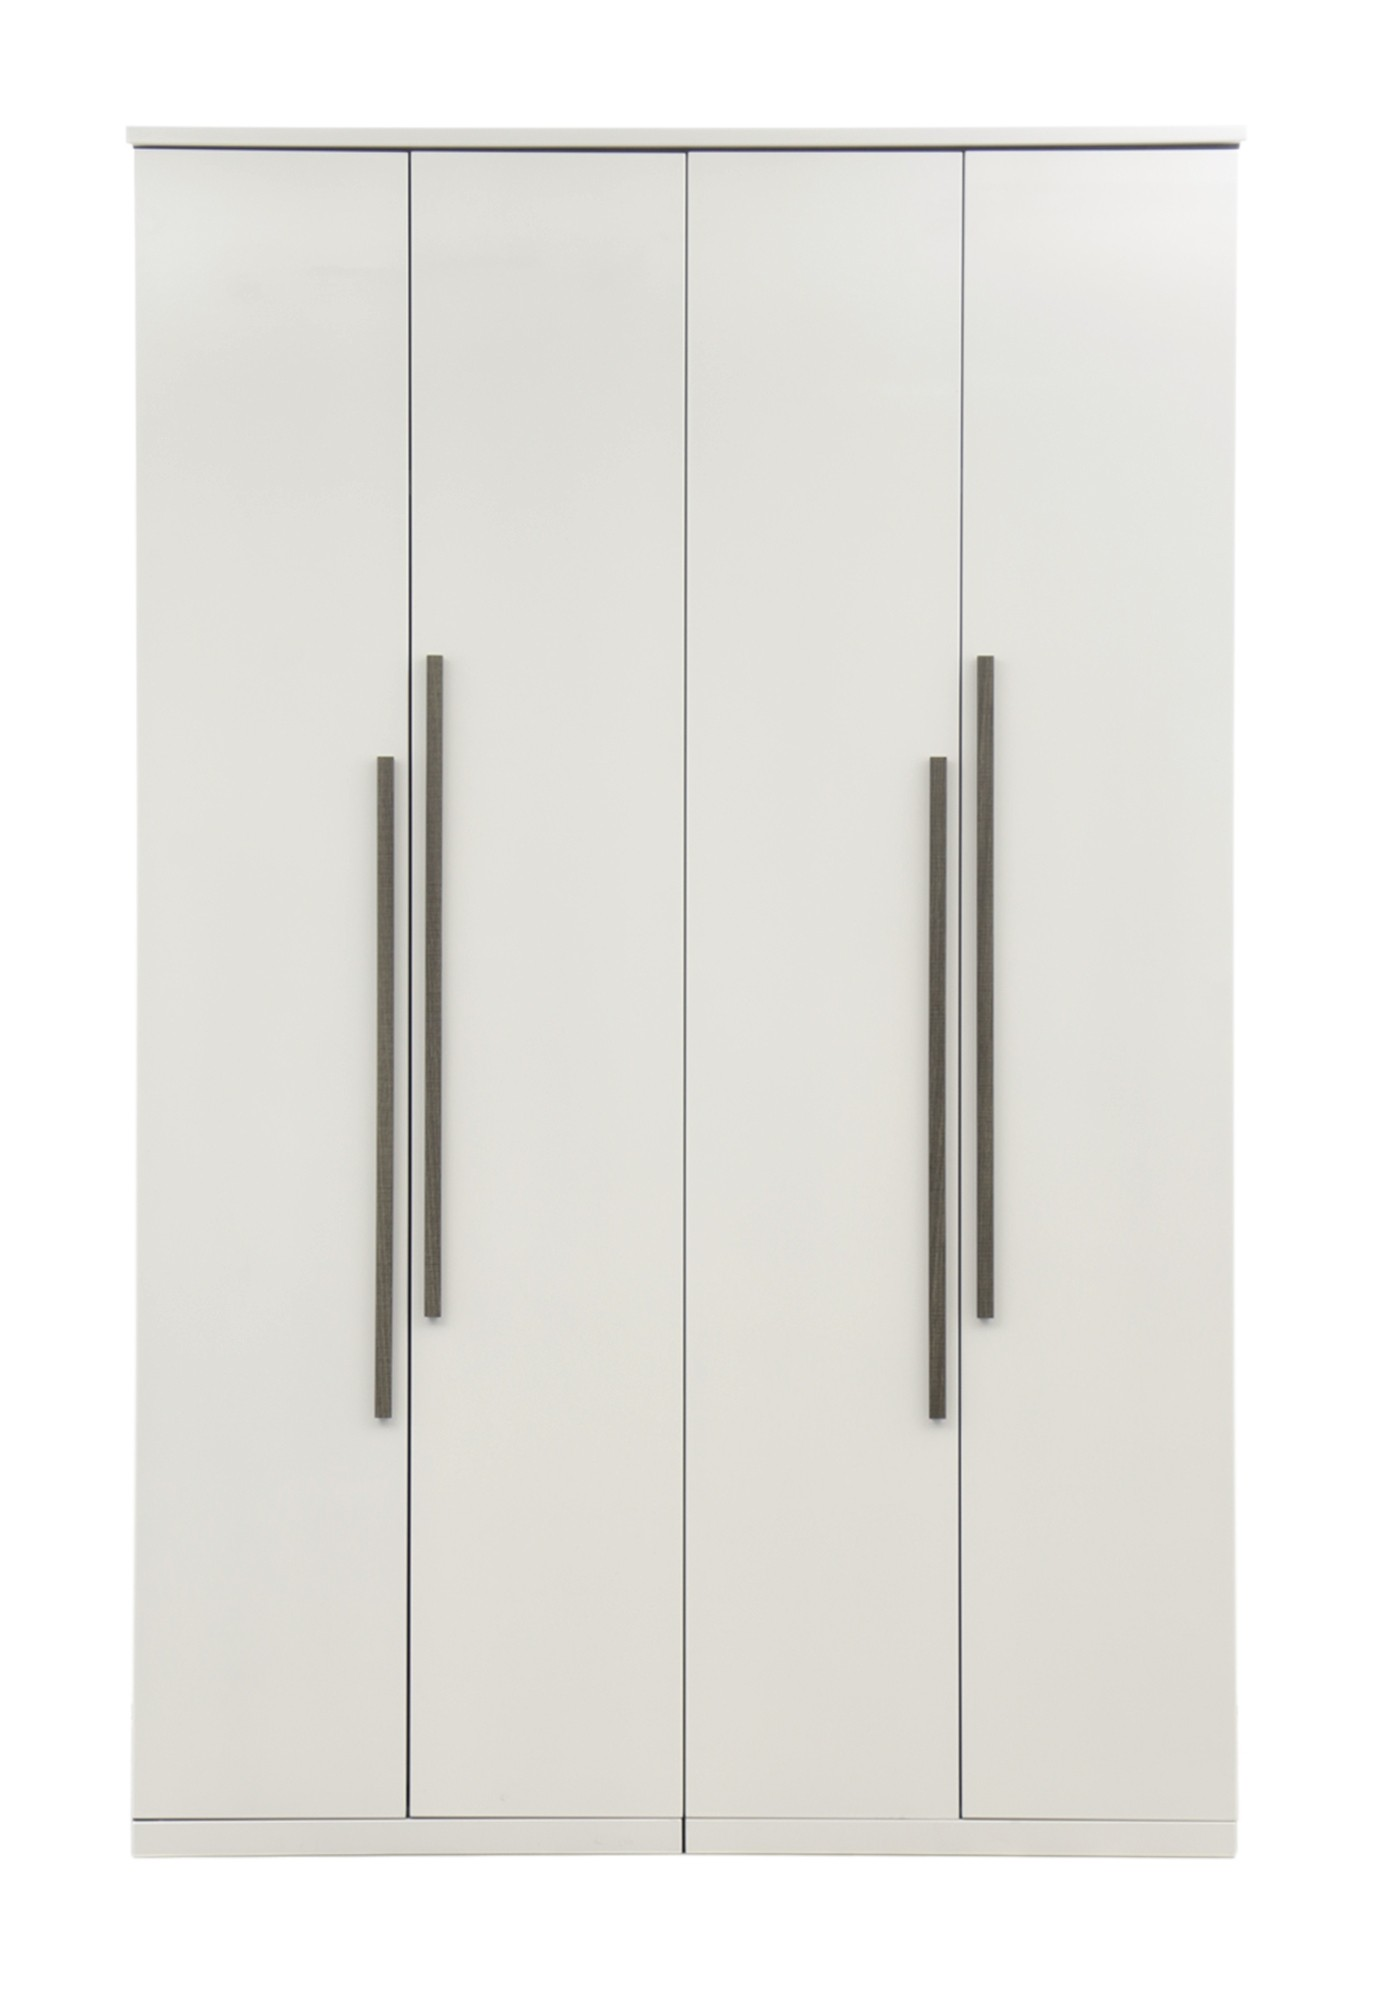 top armoire glamorous search bedroom ikea cabinet closet collection corner alluring results of designs pin floor white elegant and pinterest wardrobe lentine